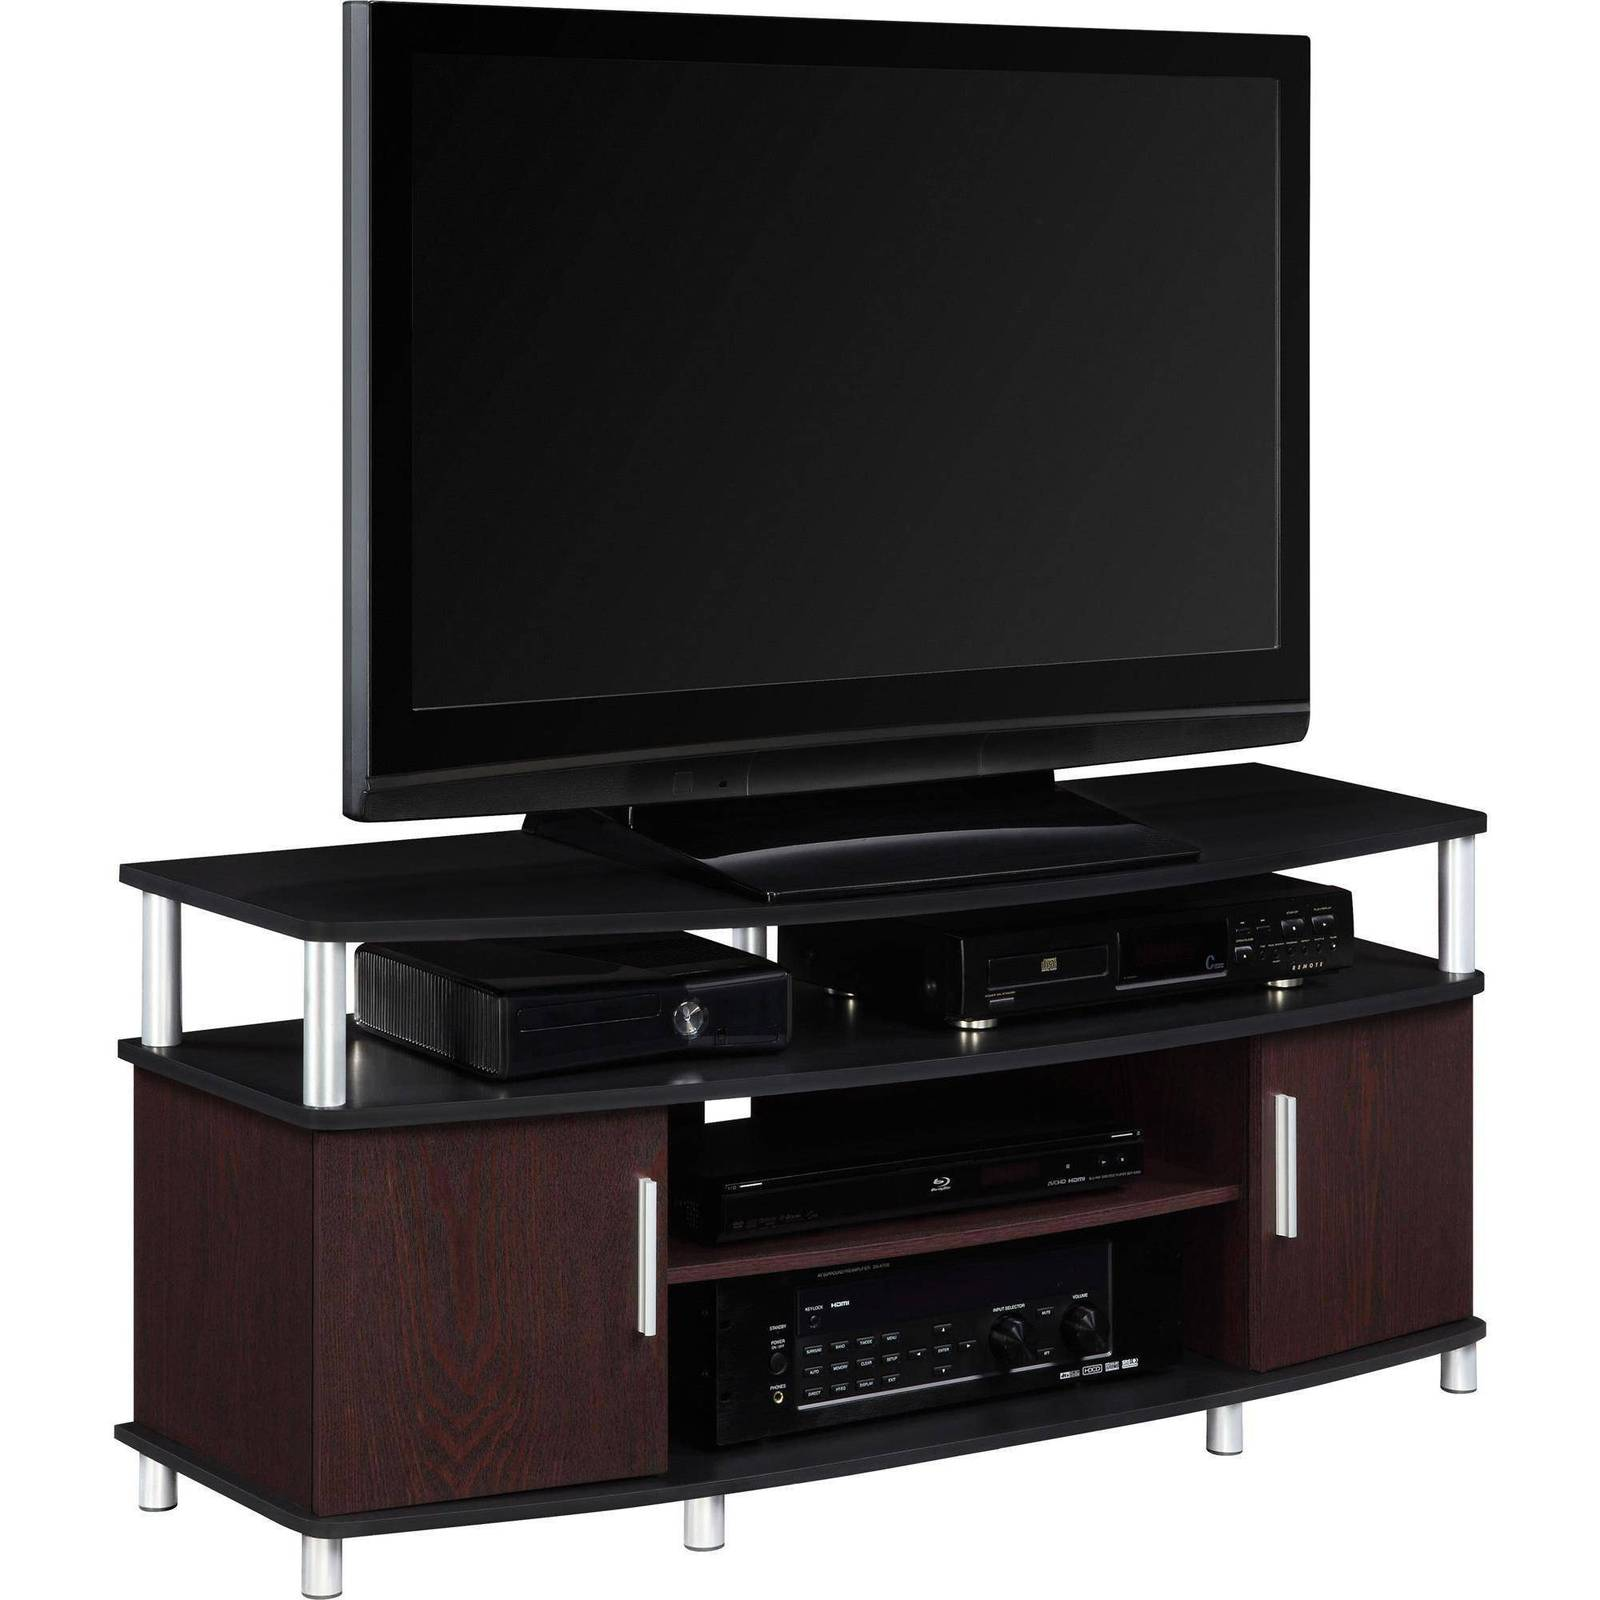 Tv stand entertainment center media home furniture storage for Tv media storage cabinet